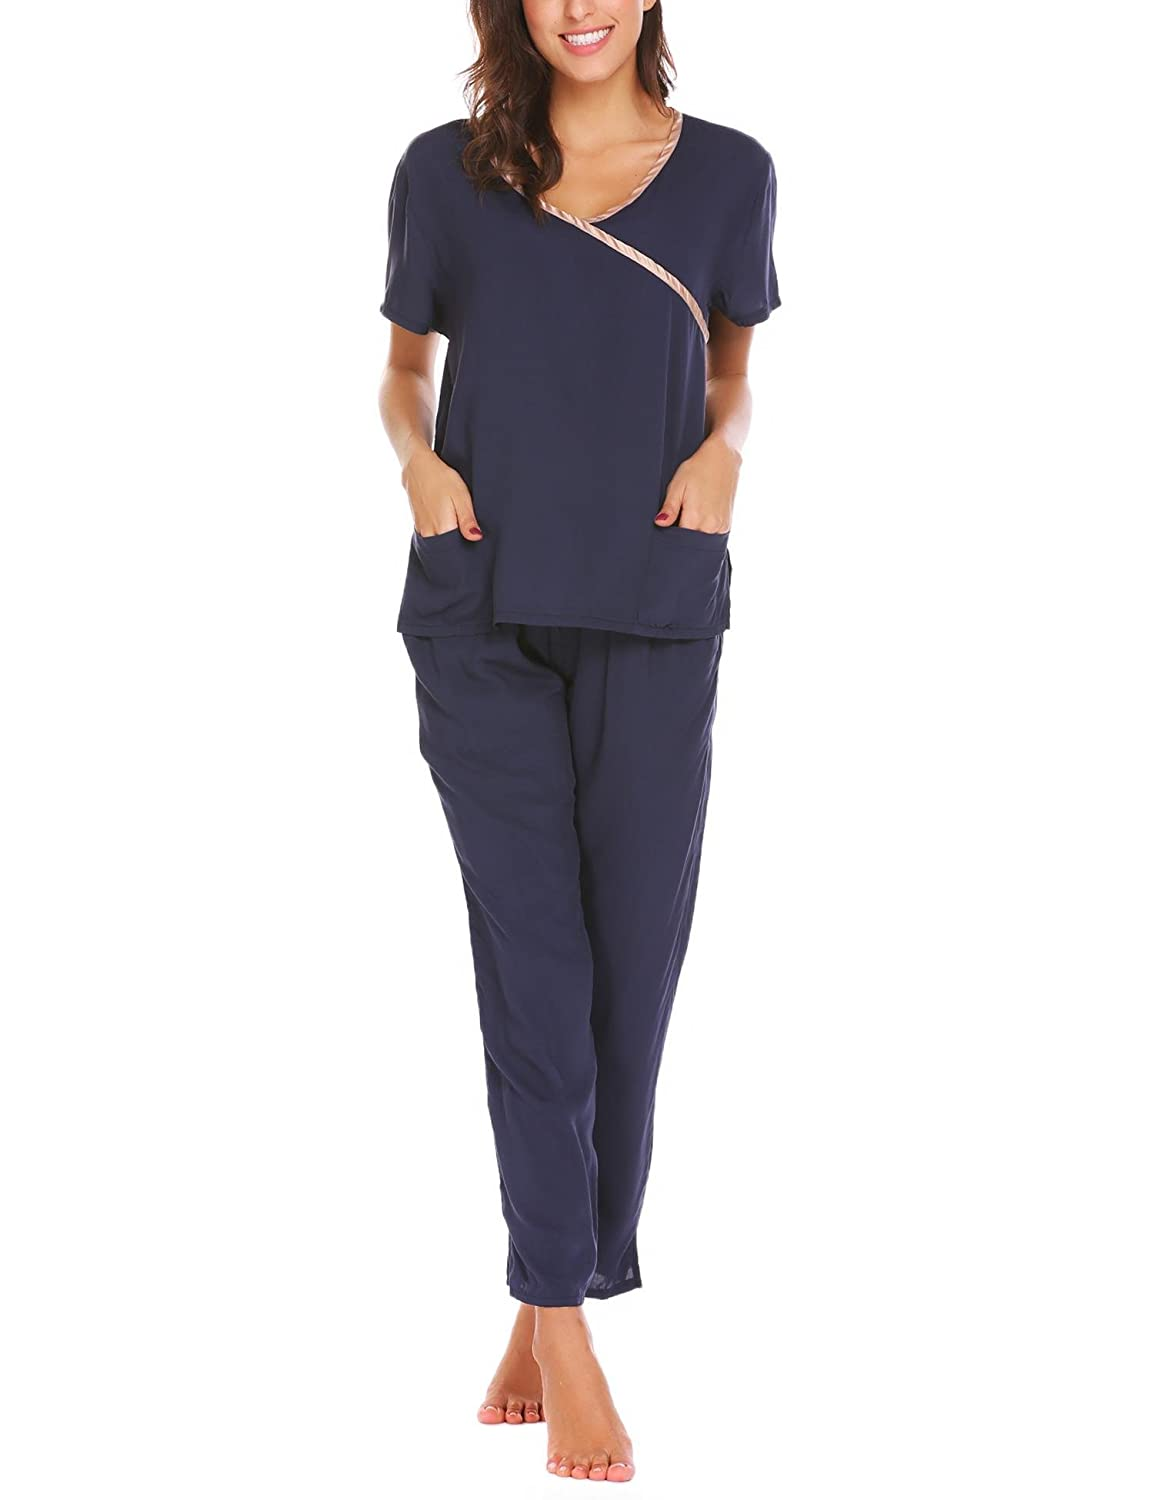 Aimado SLEEPWEAR レディース B07BDHGP76 Large|2-navy Blue 2-navy Blue Large